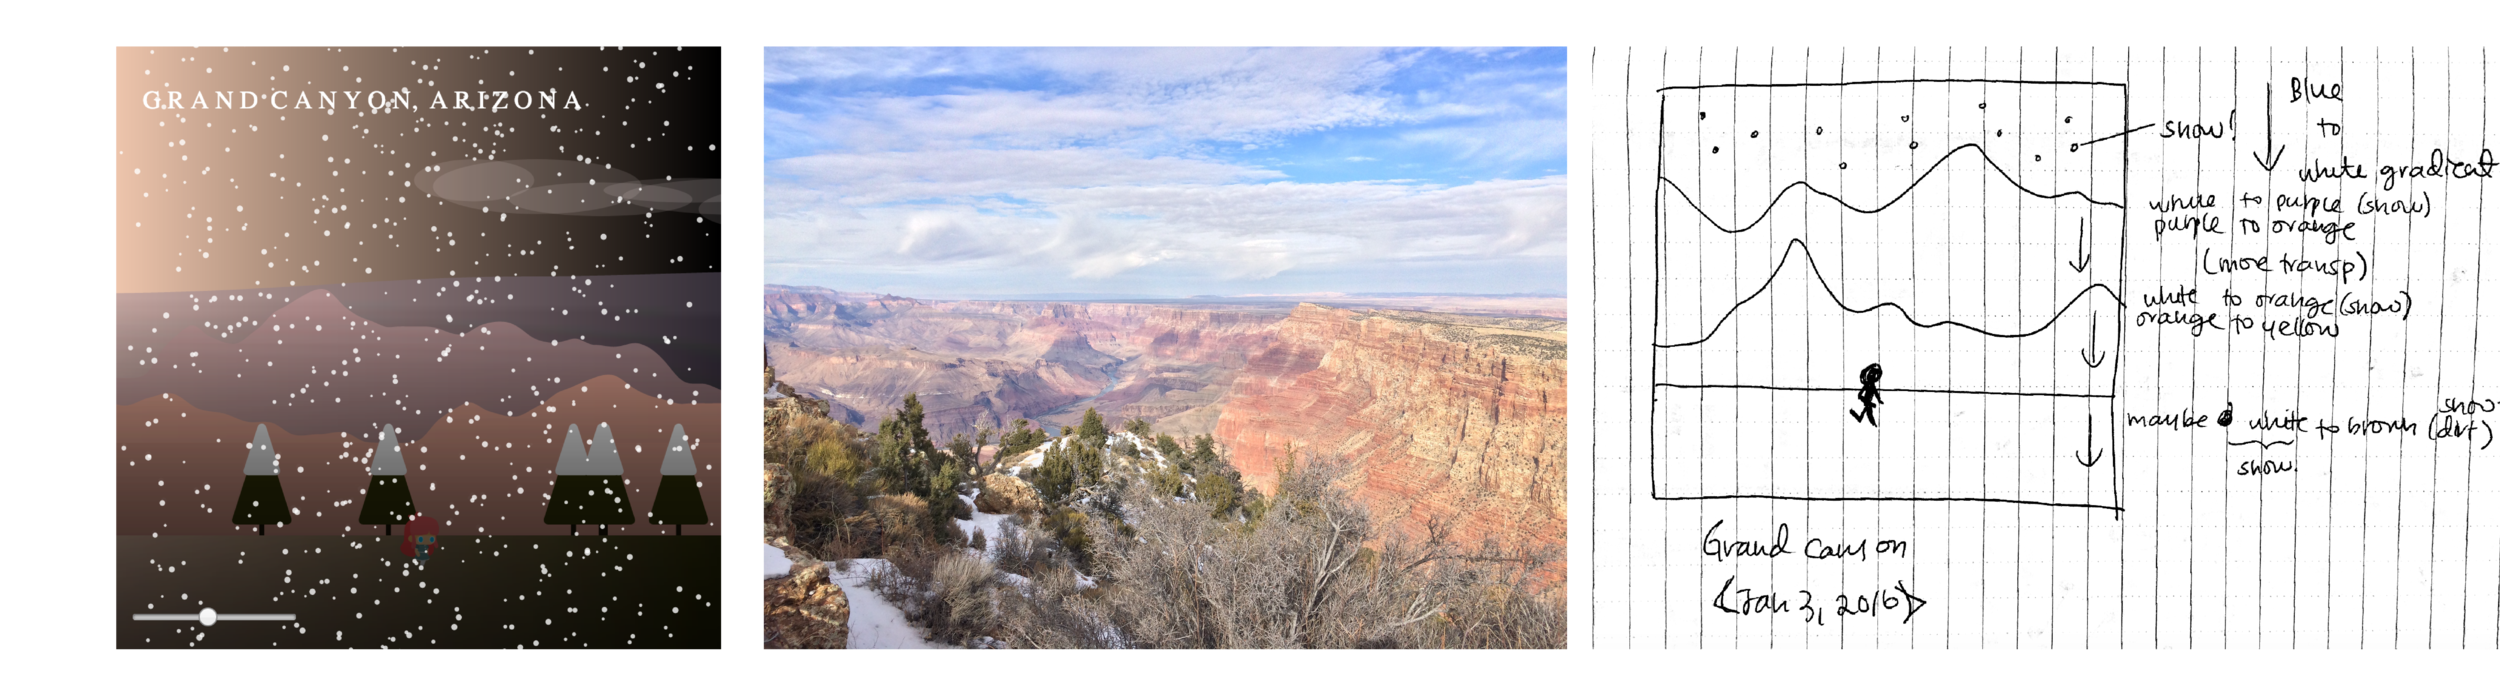 Scene 2 – Snowy Grand Canyon